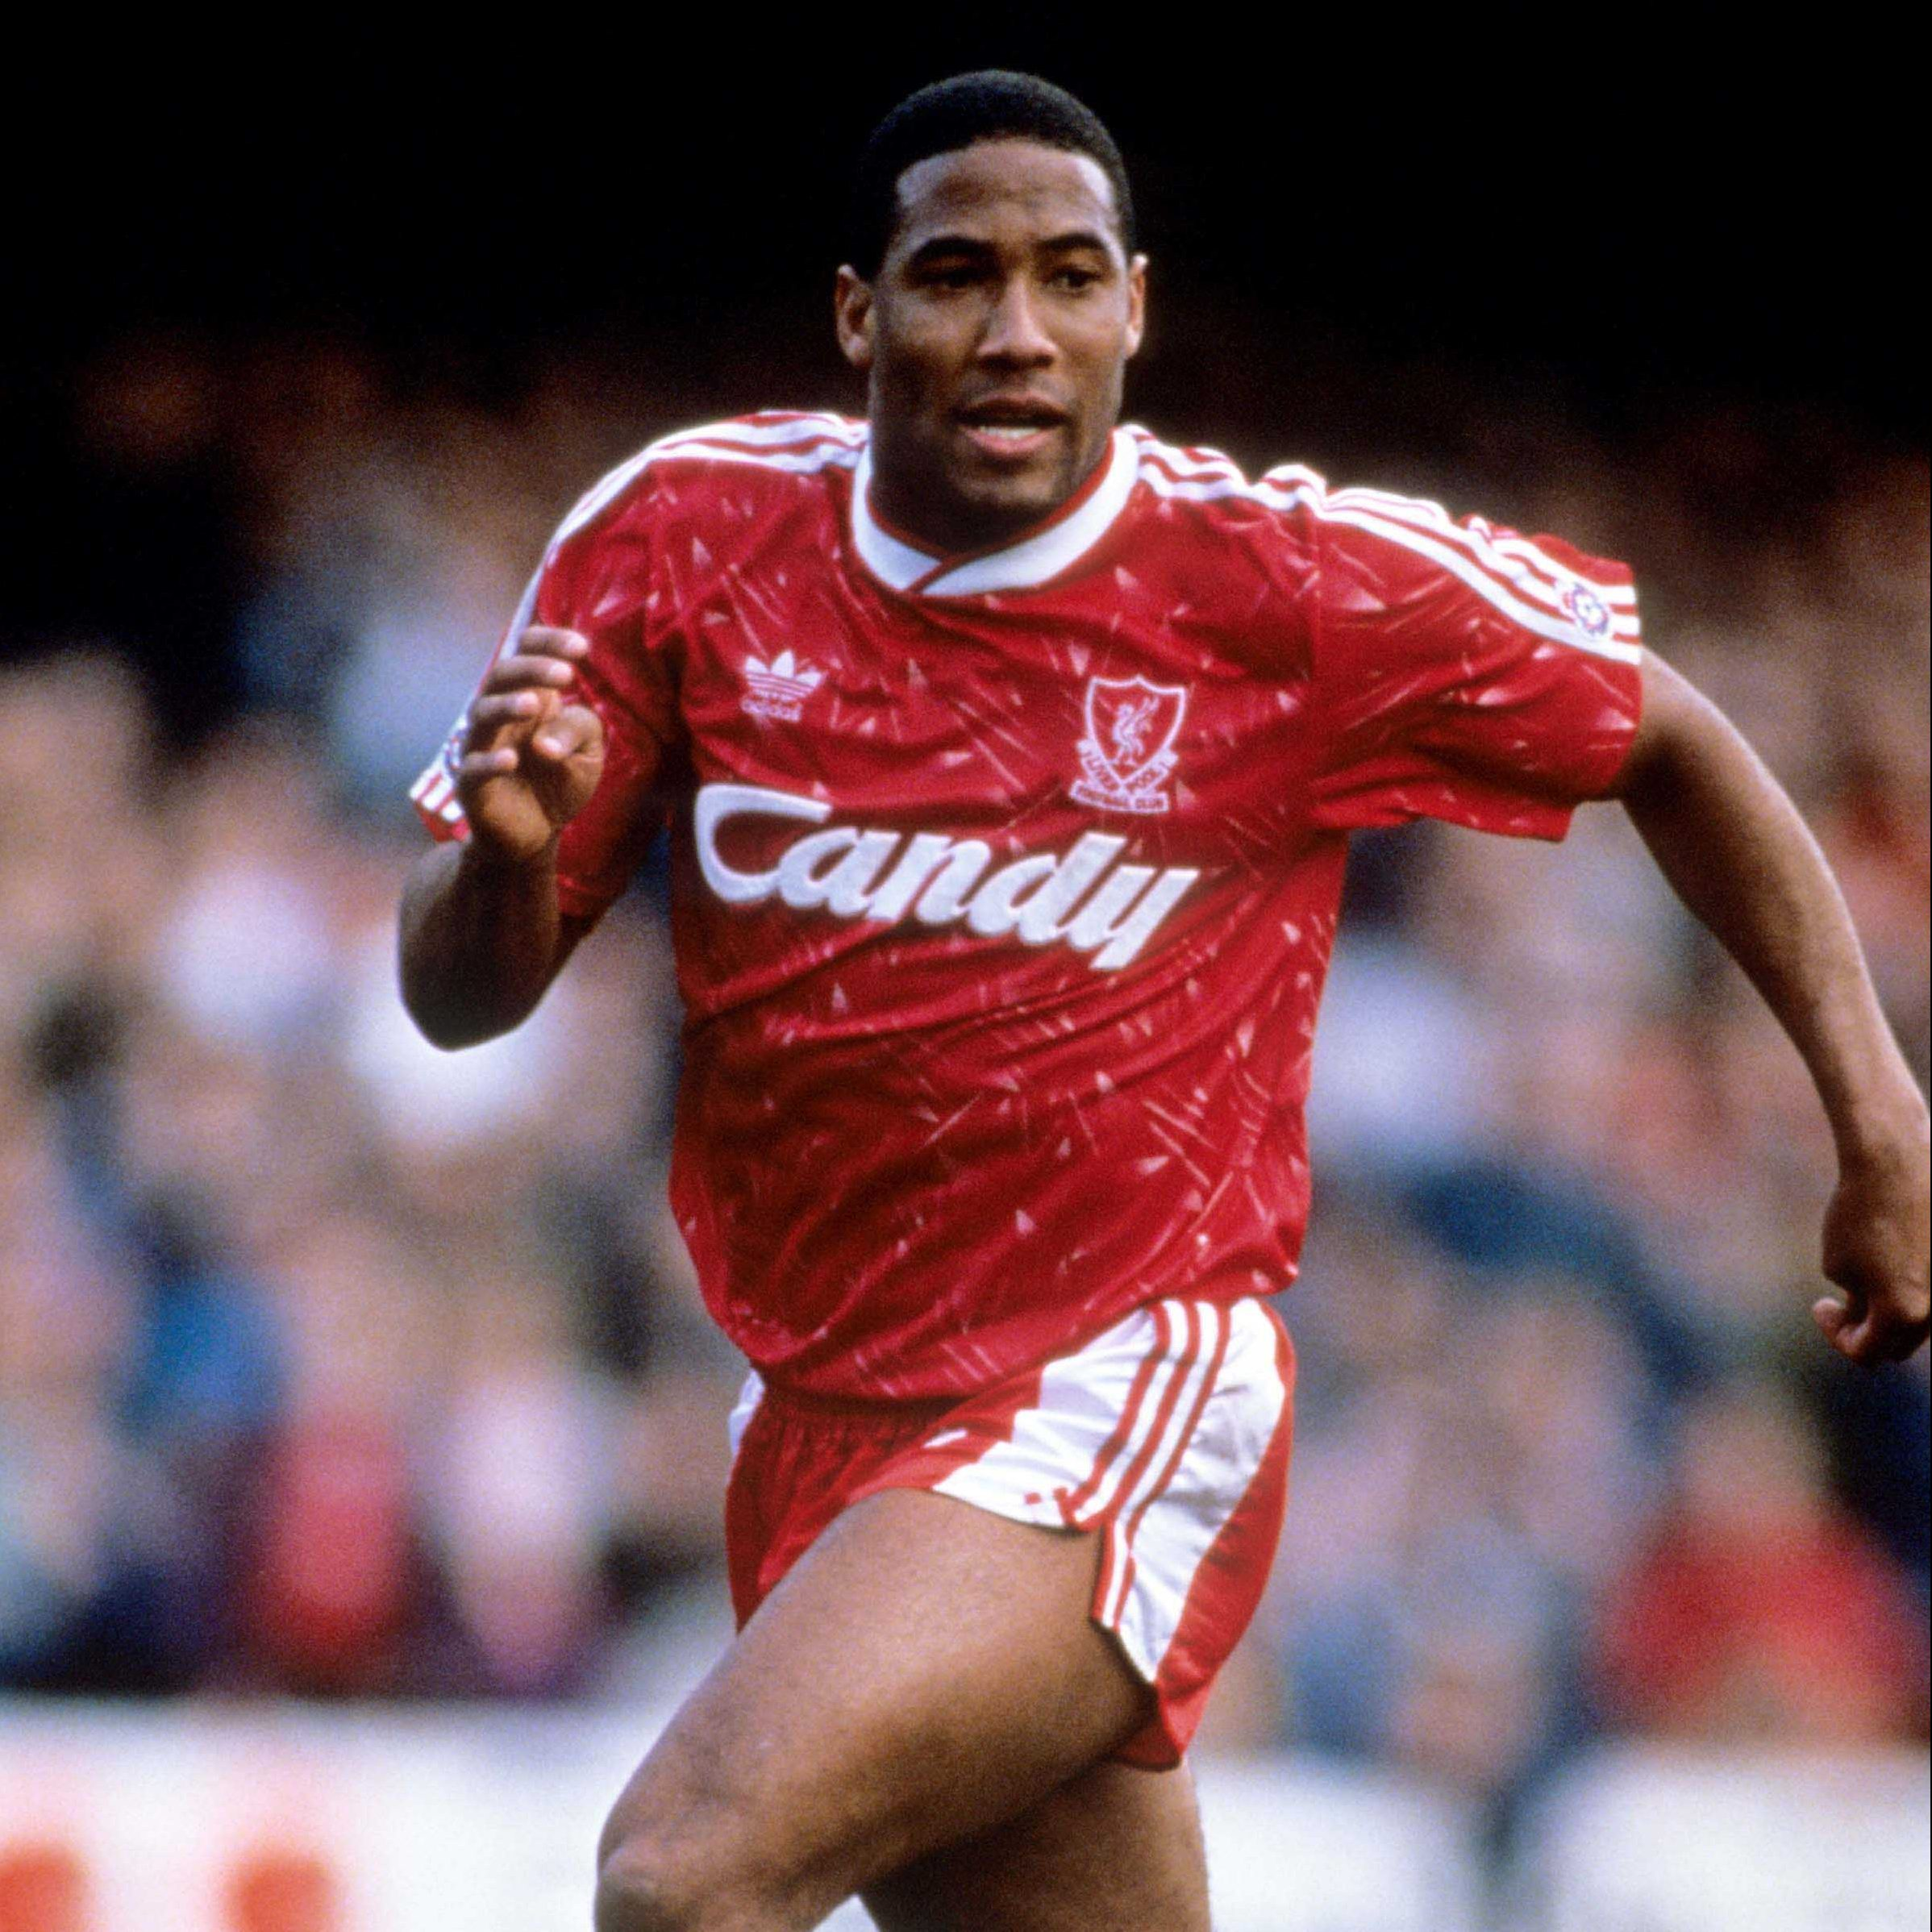 John Barnes Week: The Greatest Player I've Ever Seen At